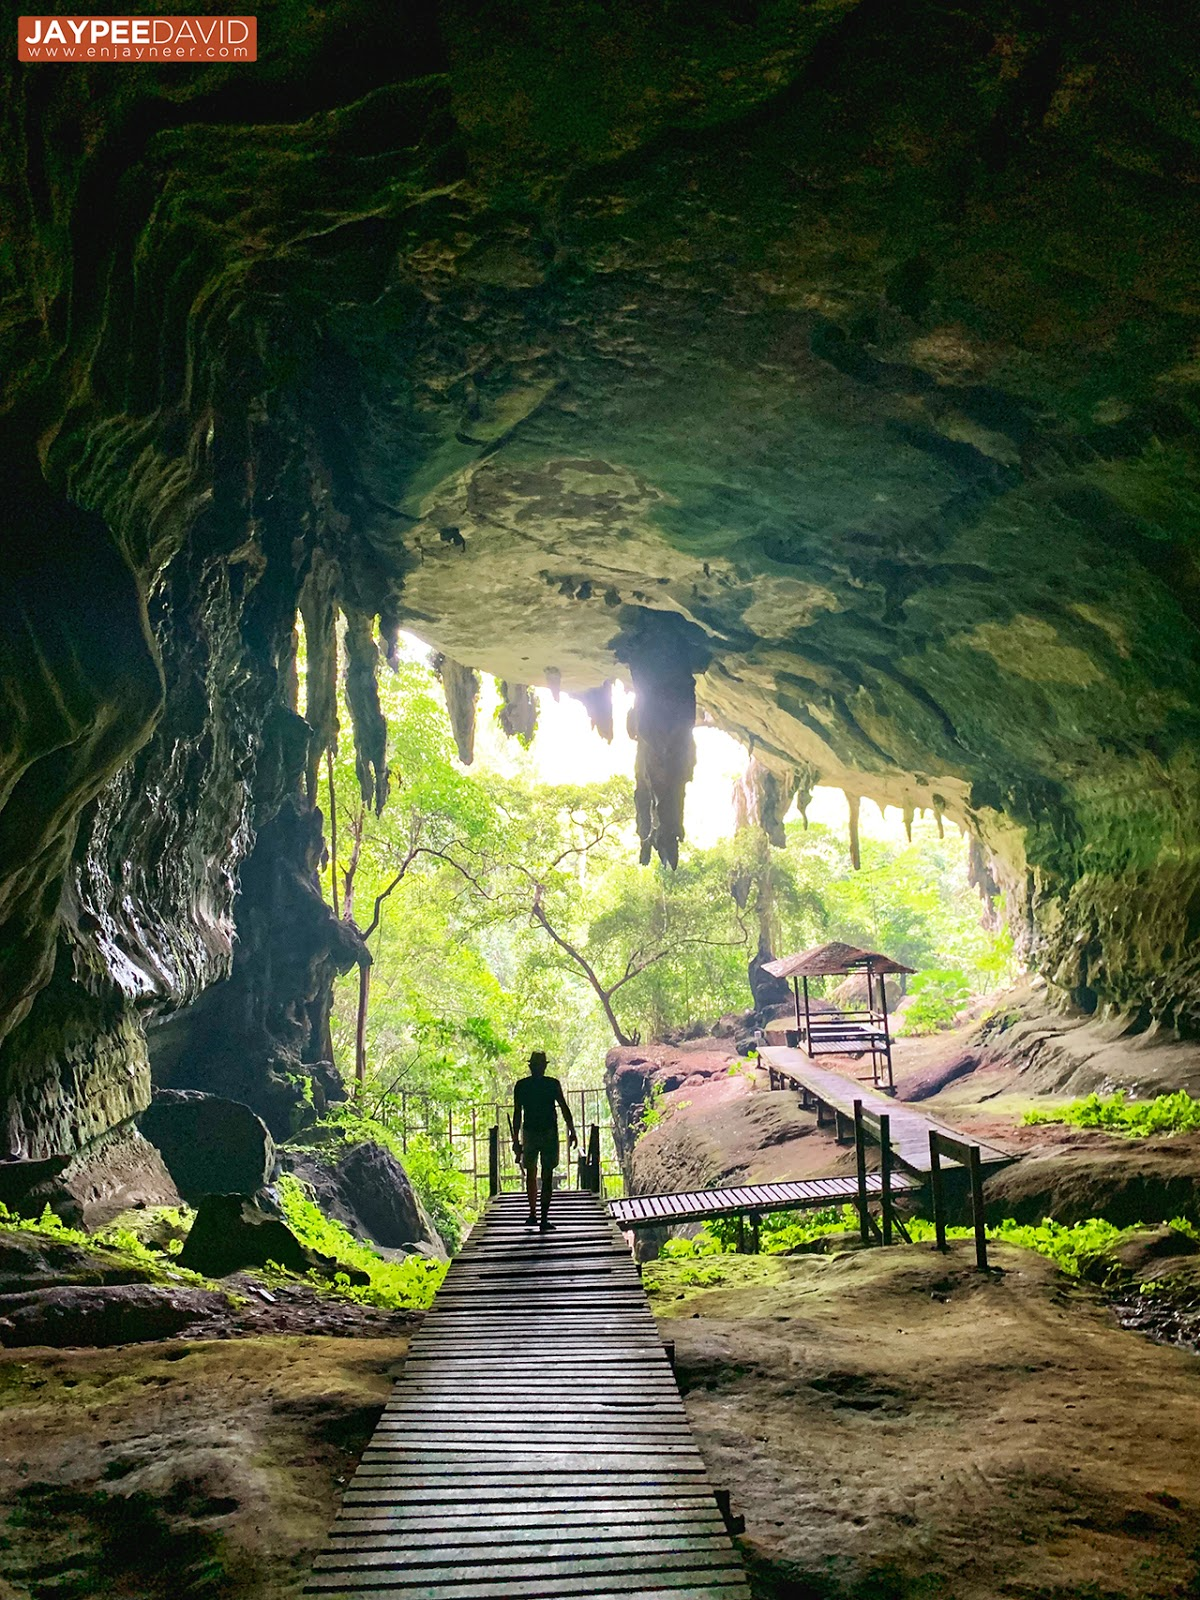 miri, malaysia, itinerary, tour package, travel, sarawak, brunei border, land travel, passport, marina bay, coco cabana, villa dapap, budget, niah cave spelunking